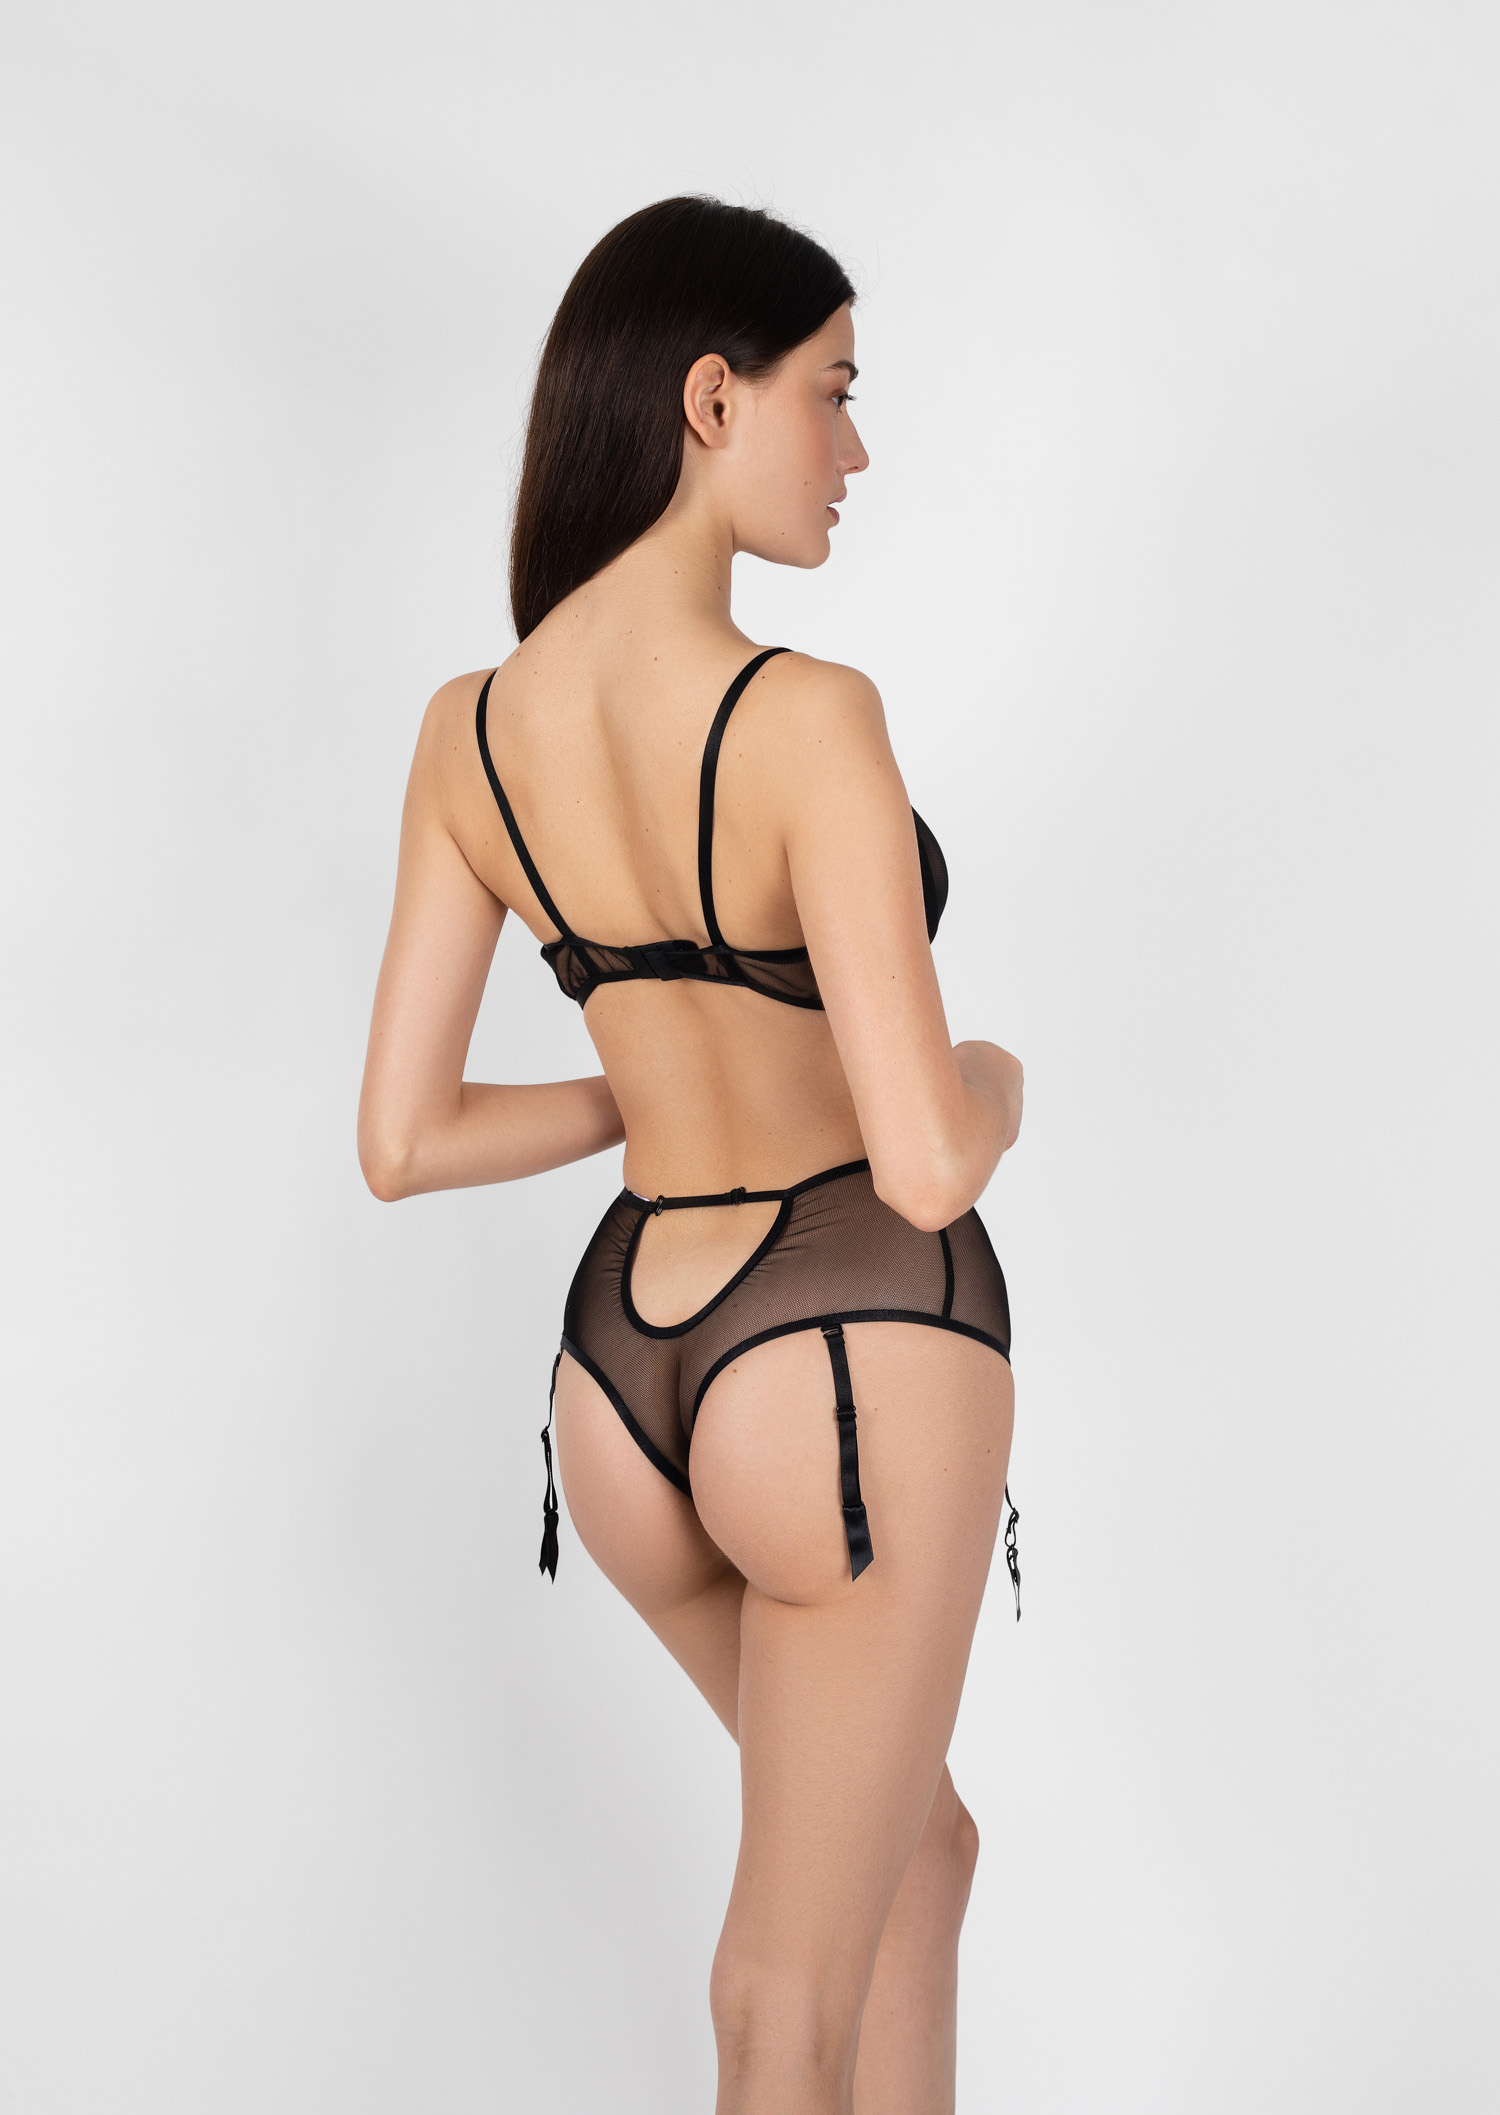 Euphoria lingerie set / transparent sexy black lingerie with garter belt / sheer panties with underwired bra / strappy push up underwear